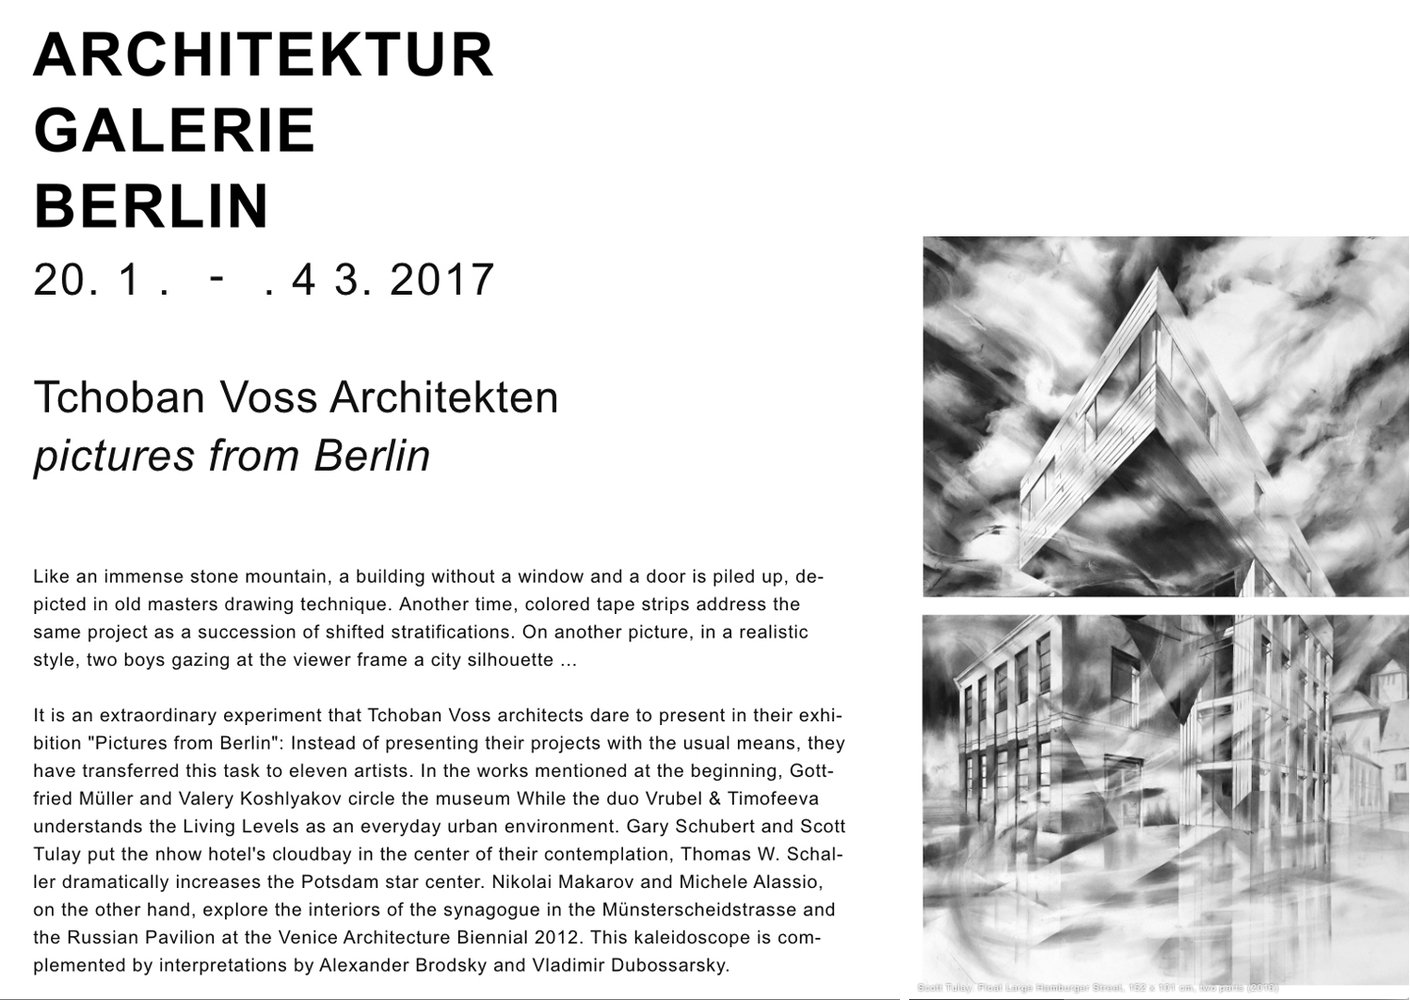 recent drawings and openings Architektur Galerie Berlin opening January 2017